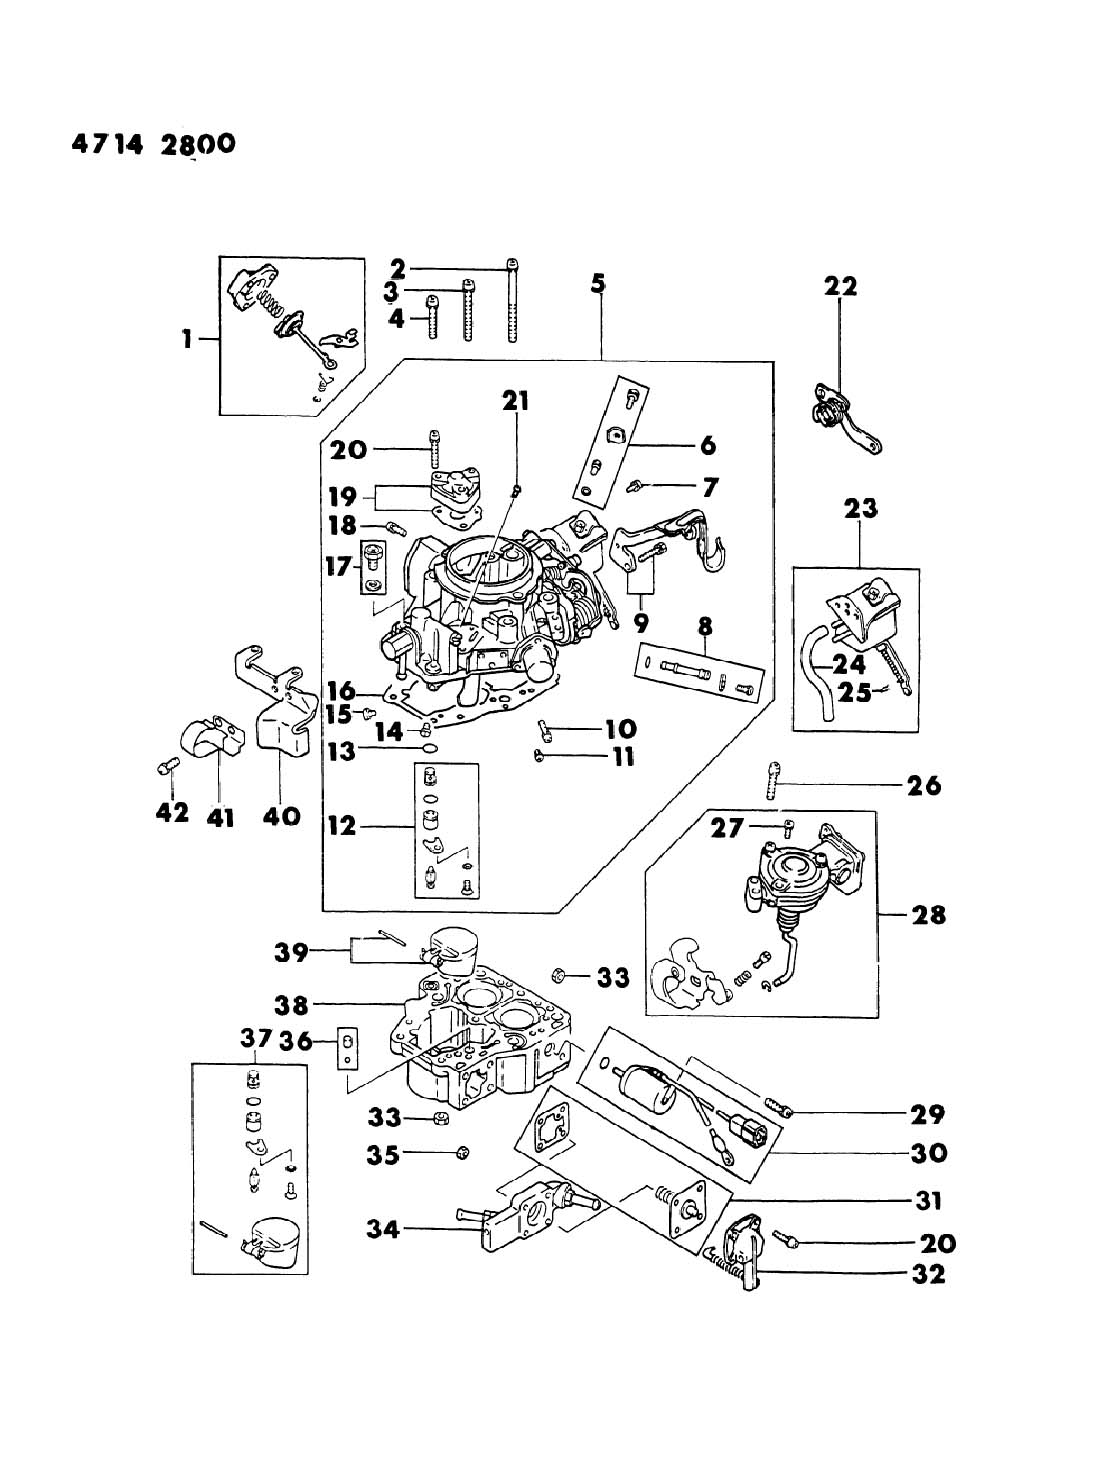 1984 Toyota 22r Fuse Box Diagram. Toyota. Auto Wiring Diagram